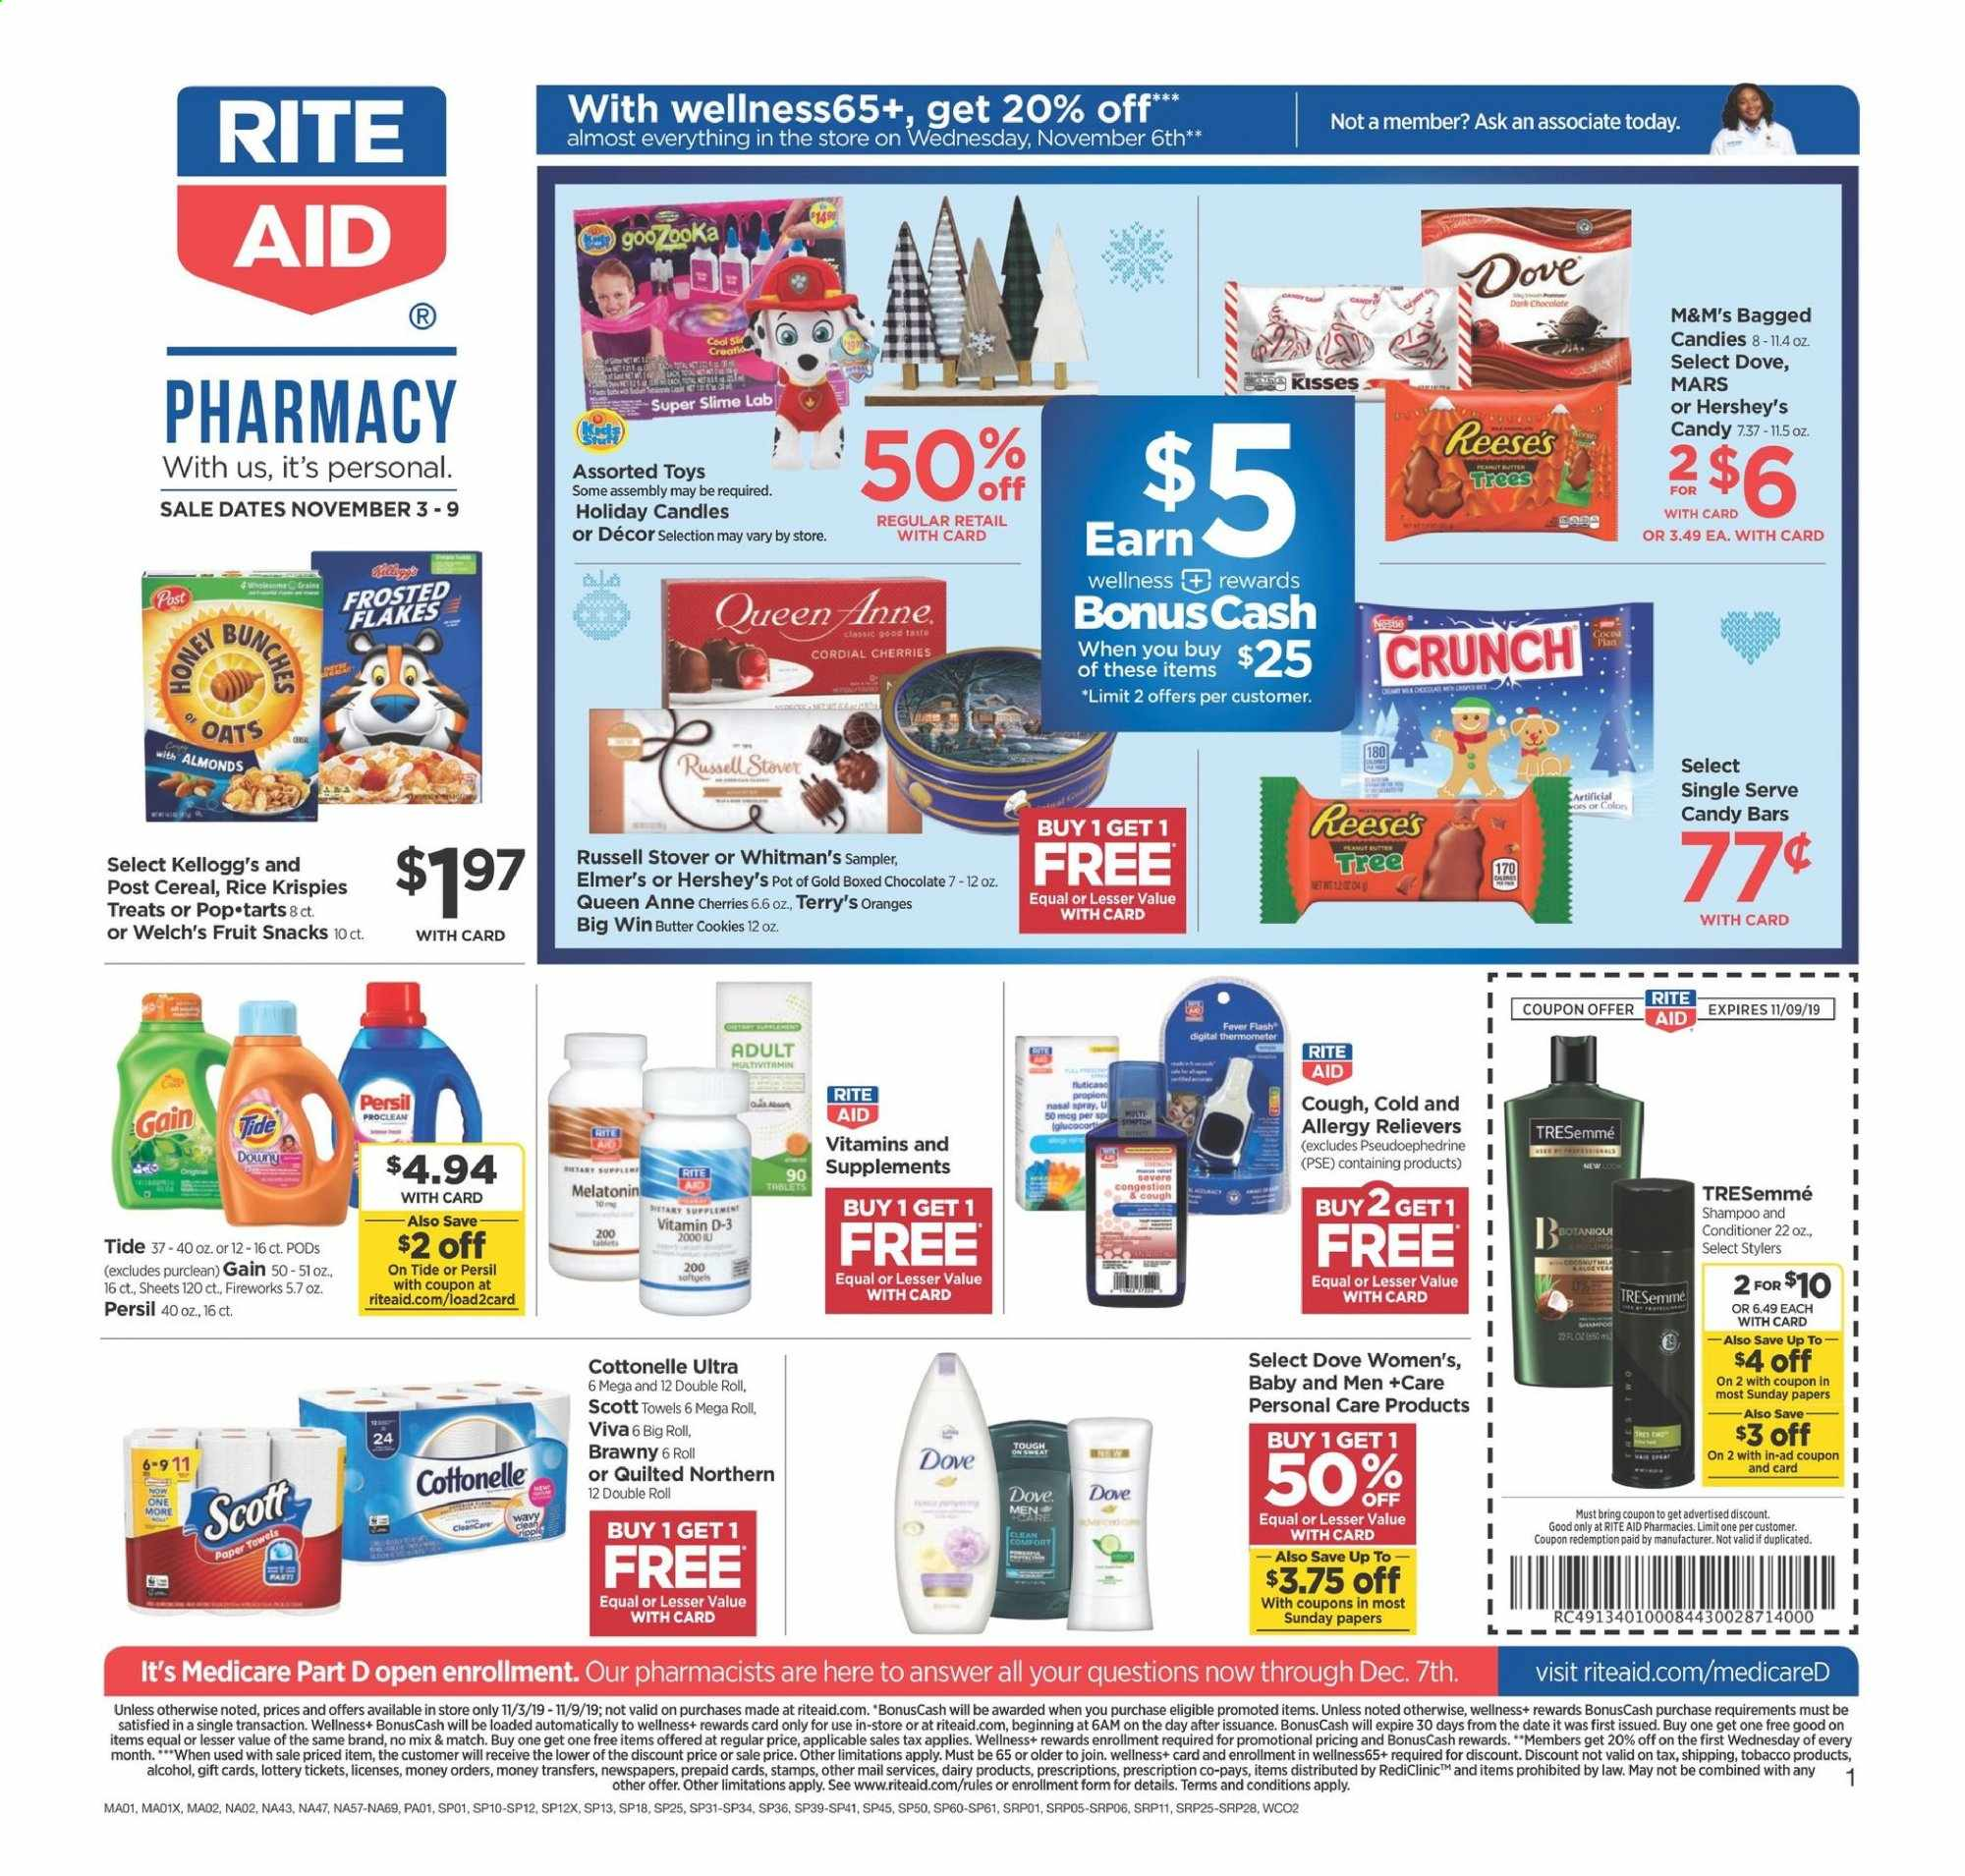 RITE AID Flyer - 11.03.2019 - 11.09.2019 - Sales products - almonds, bittersweet chocolate, butter, candle, cereals, conditioner, cookies, cottonelle, dates, dove, downy, gain, melatonin, multivitamin, rice, scott, shampoo, spray, thermometer, tide, tree, tresemmé, pot, cherries, paper towel, persil, oats, orange, chocolate, toys, candy, butter cookies, cereal, quilted northern, flakes, mars, fruit, treats, tablets, m&m's. Page 1.